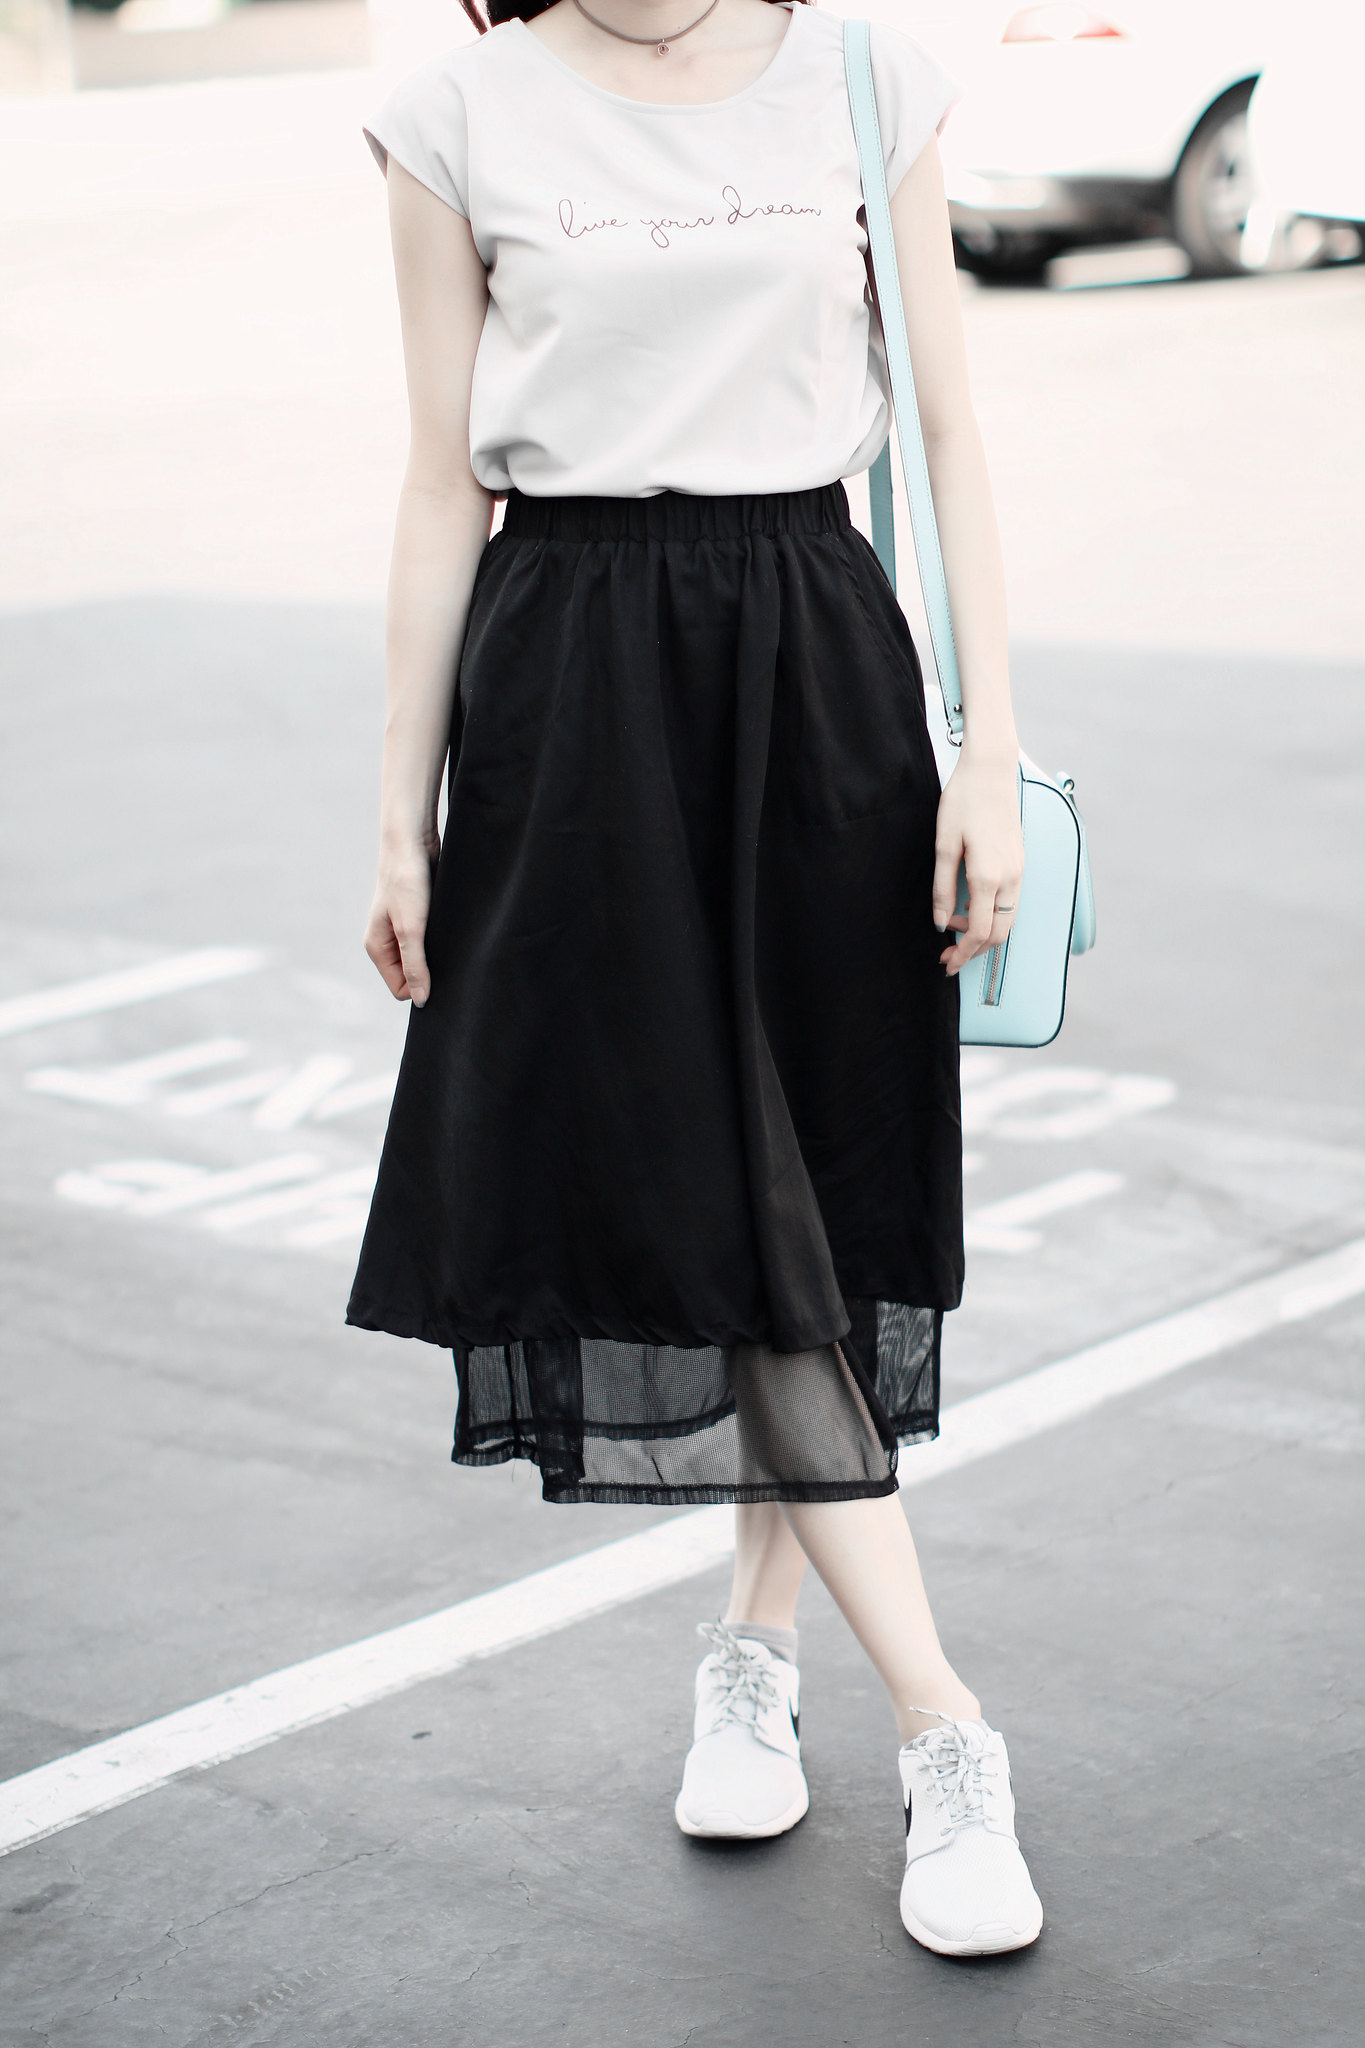 9809-live-your-dream-chiffon-blouse-korean-fashion-black midi-skirt